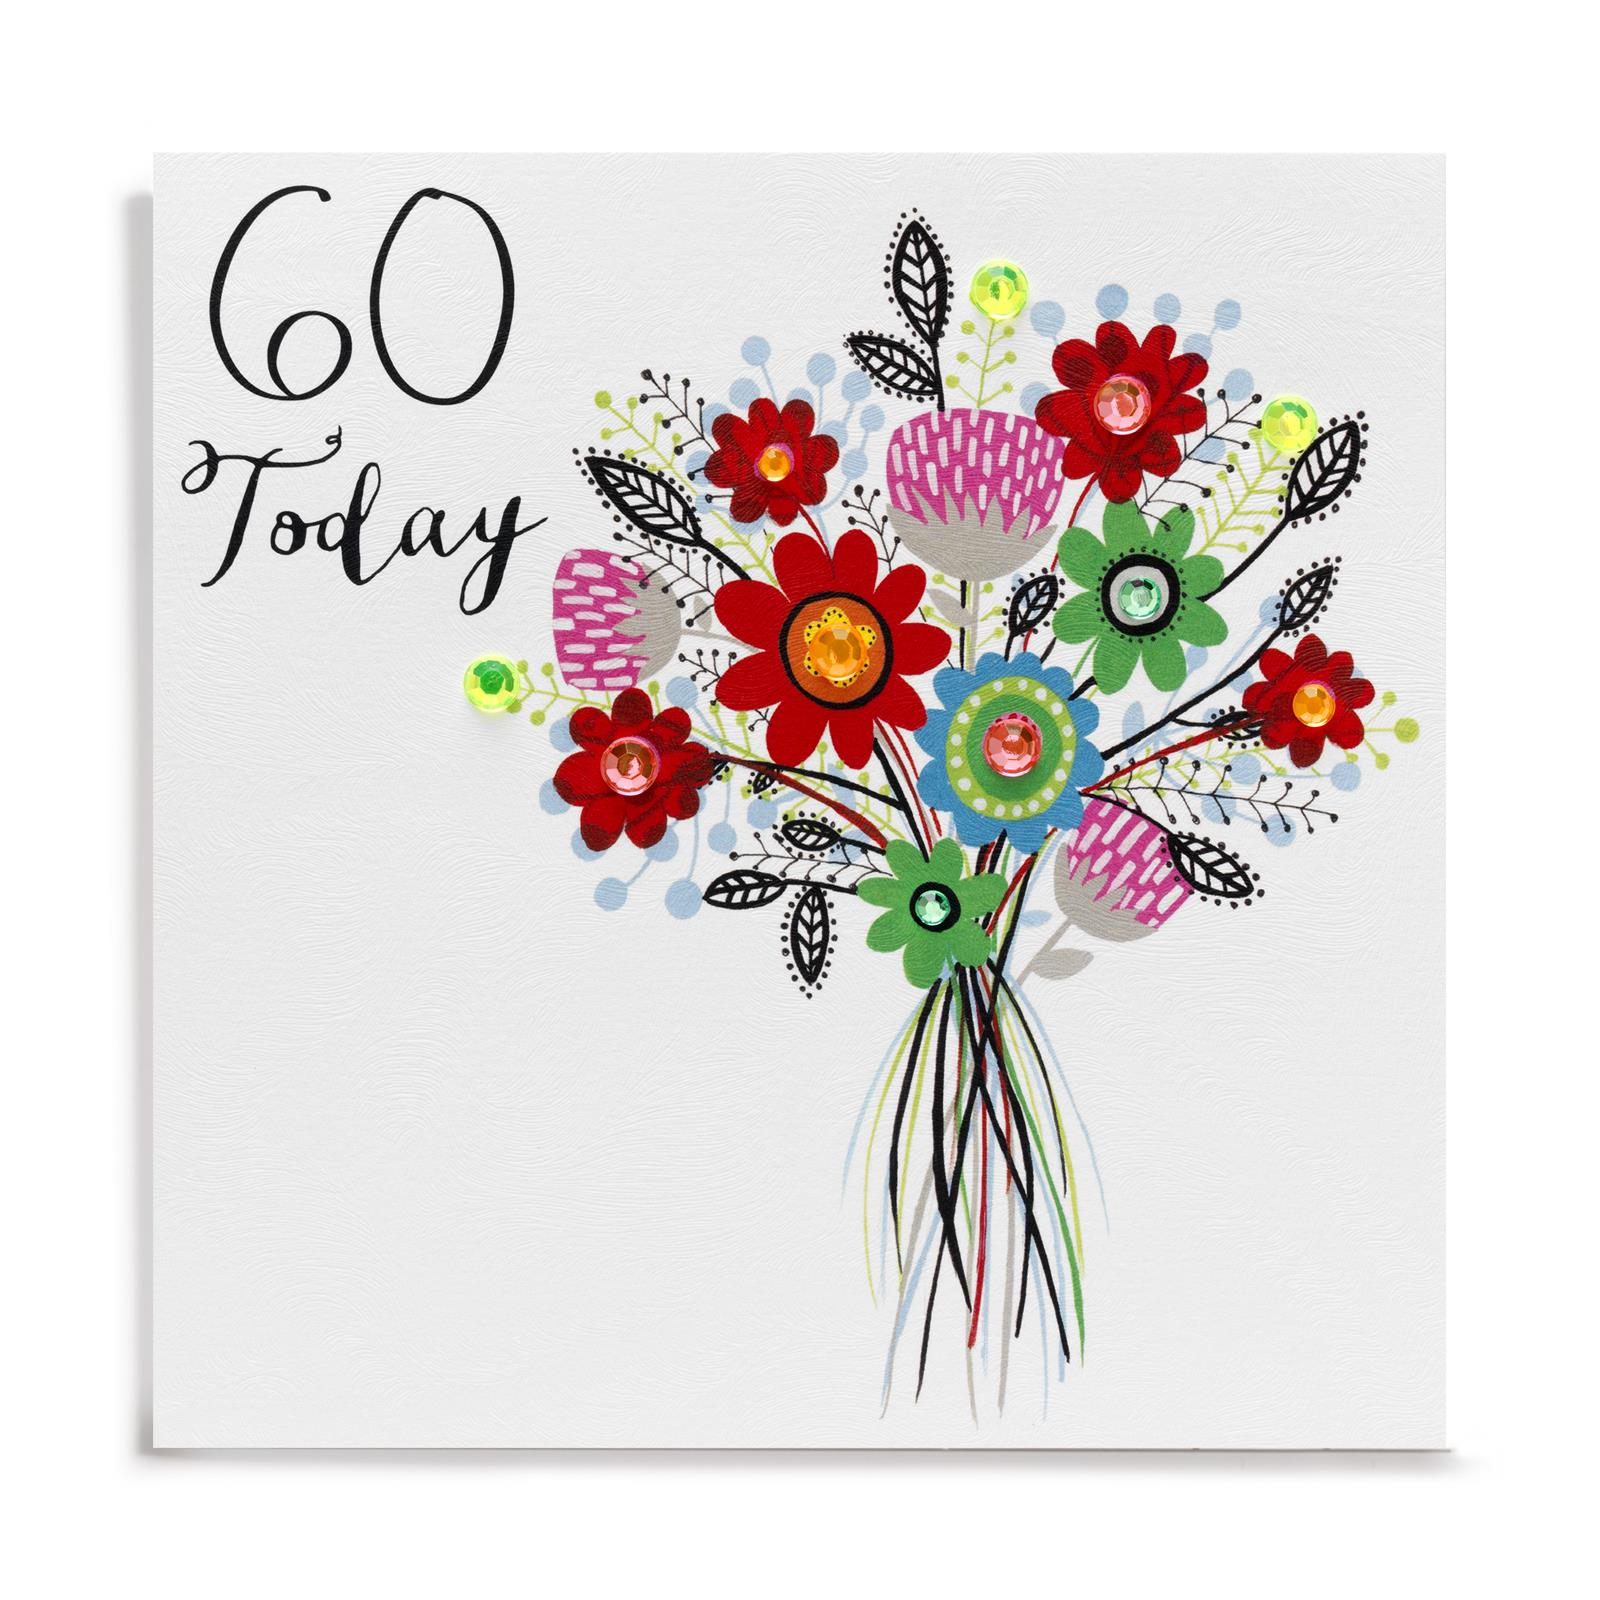 buy 60th birthday card for her online from karenza paperie age sixty luxury birthday cards for her with floral bouquet